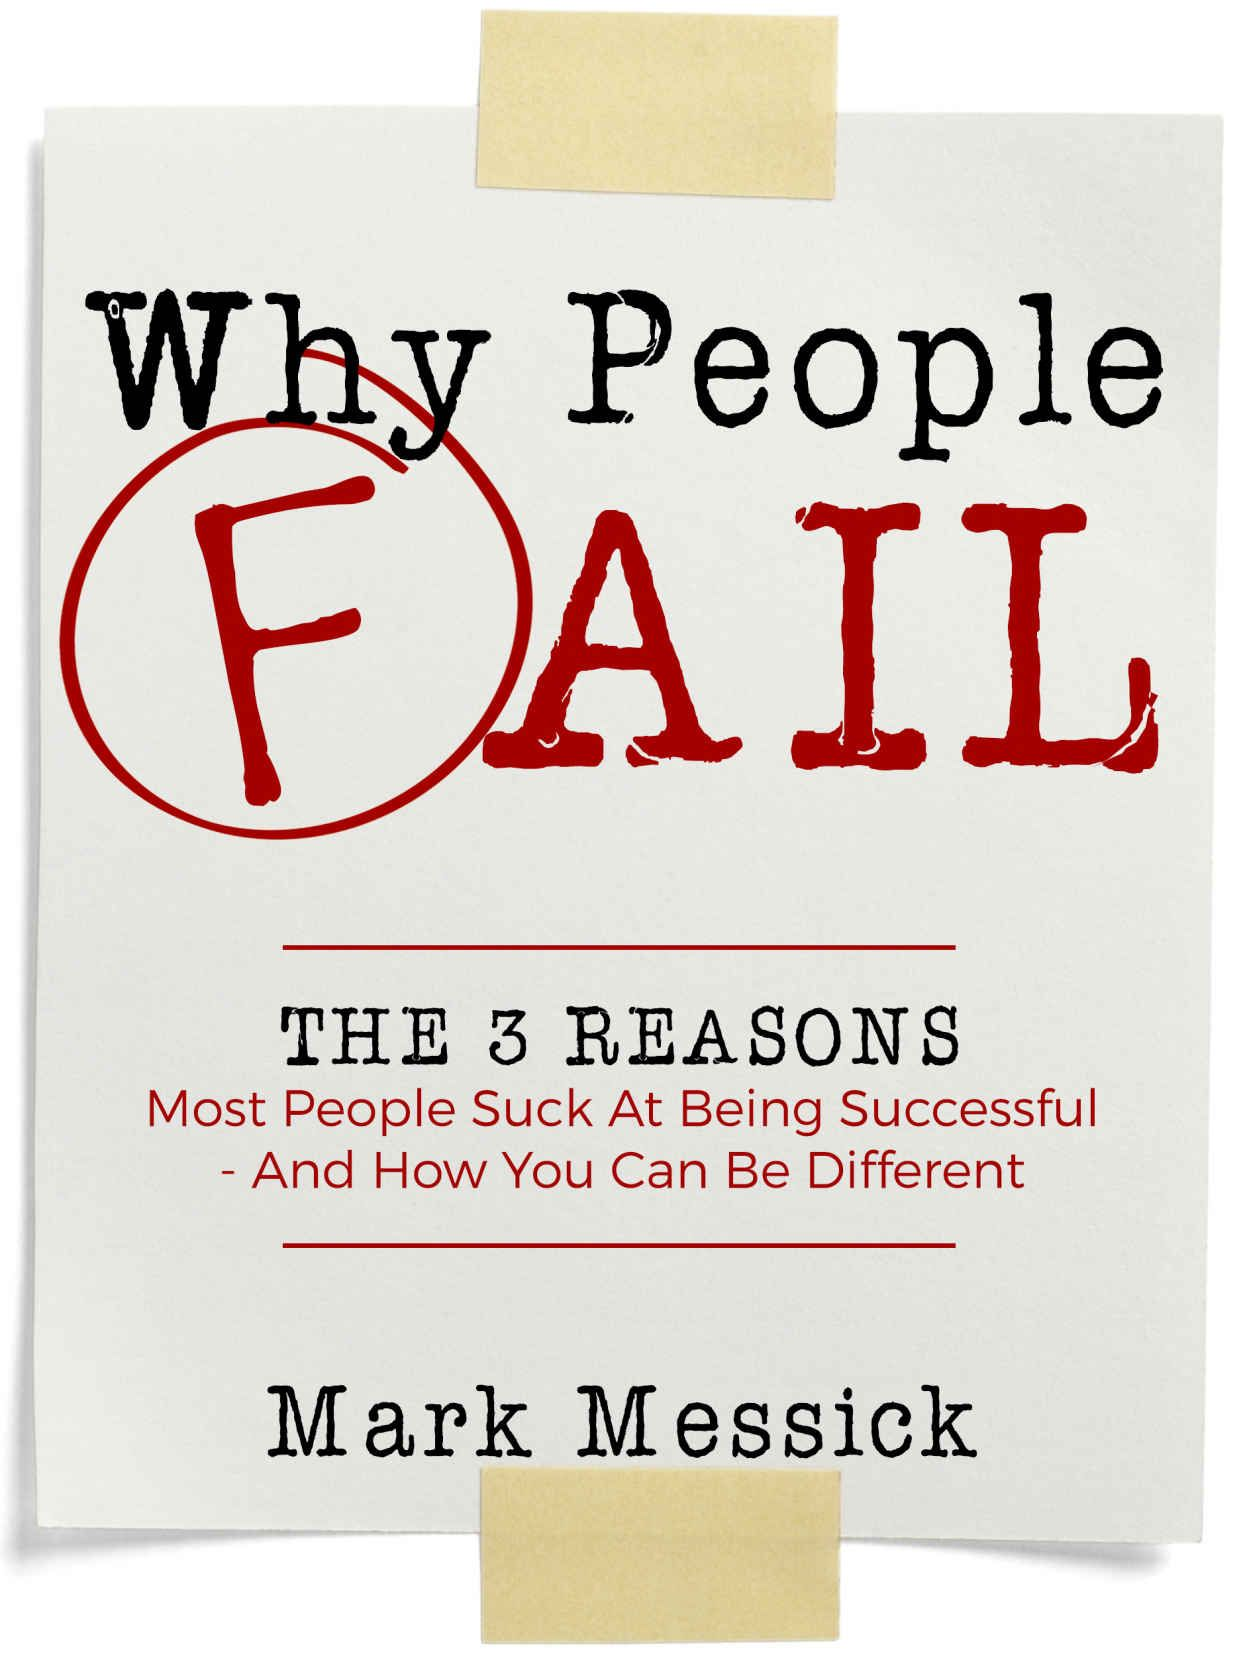 Why People Fail: The 3 Reasons Most People Suck At Being Successful - And How You Can Be Different, Mark Messick - Amazon.com